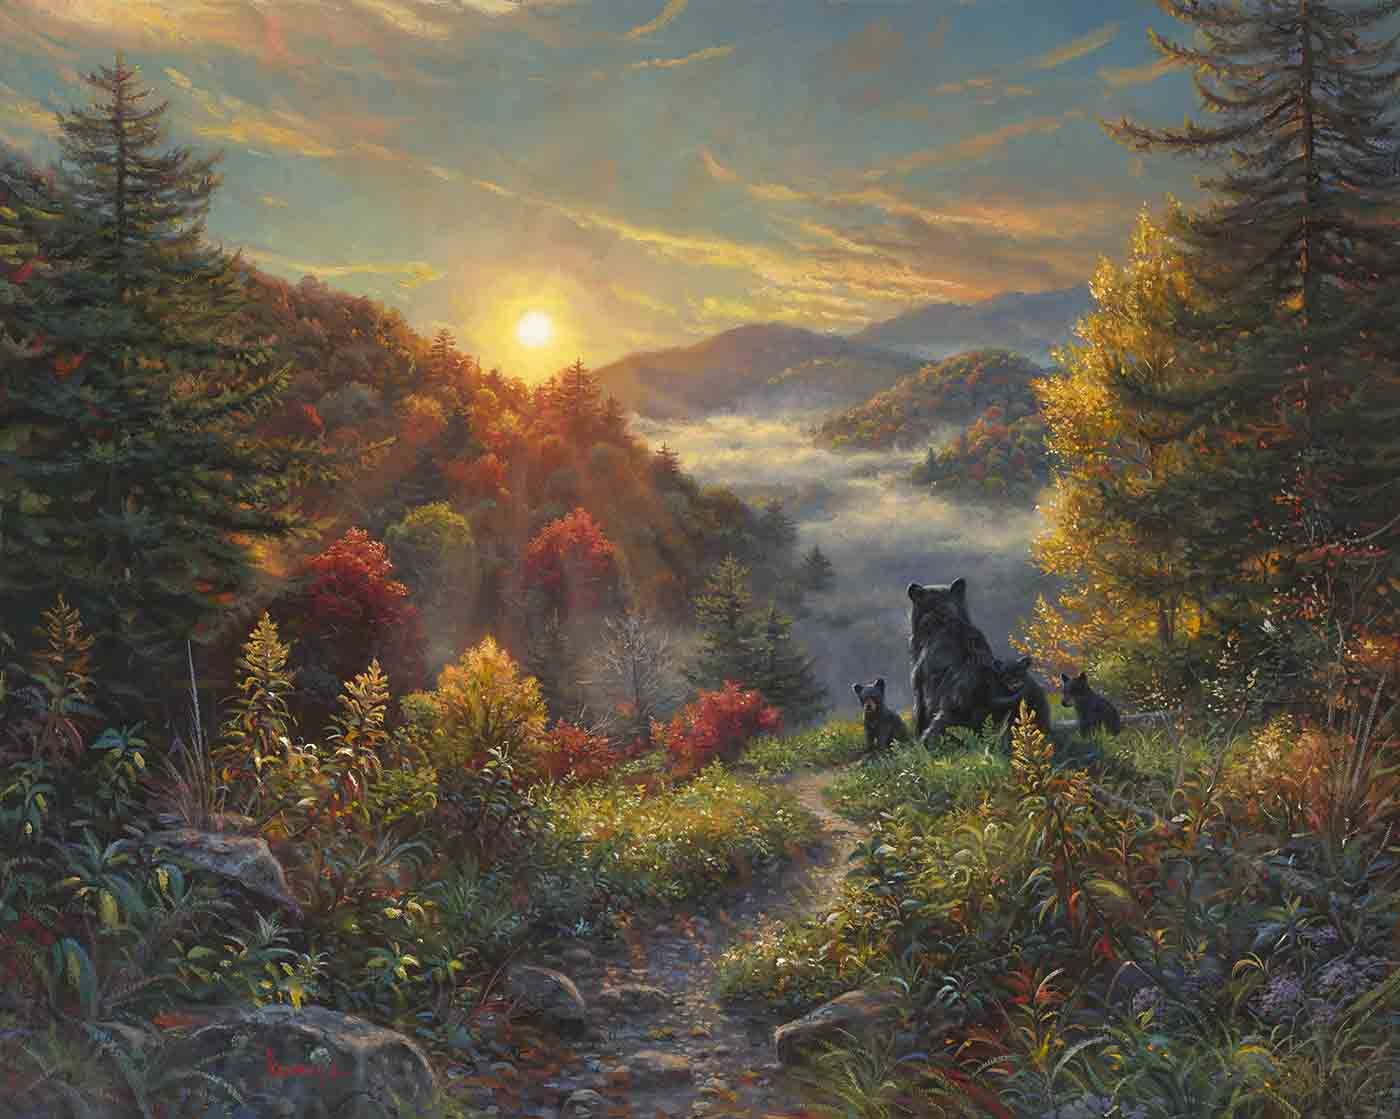 Mark Keathley Hand Signed And Numbered Limited Edition